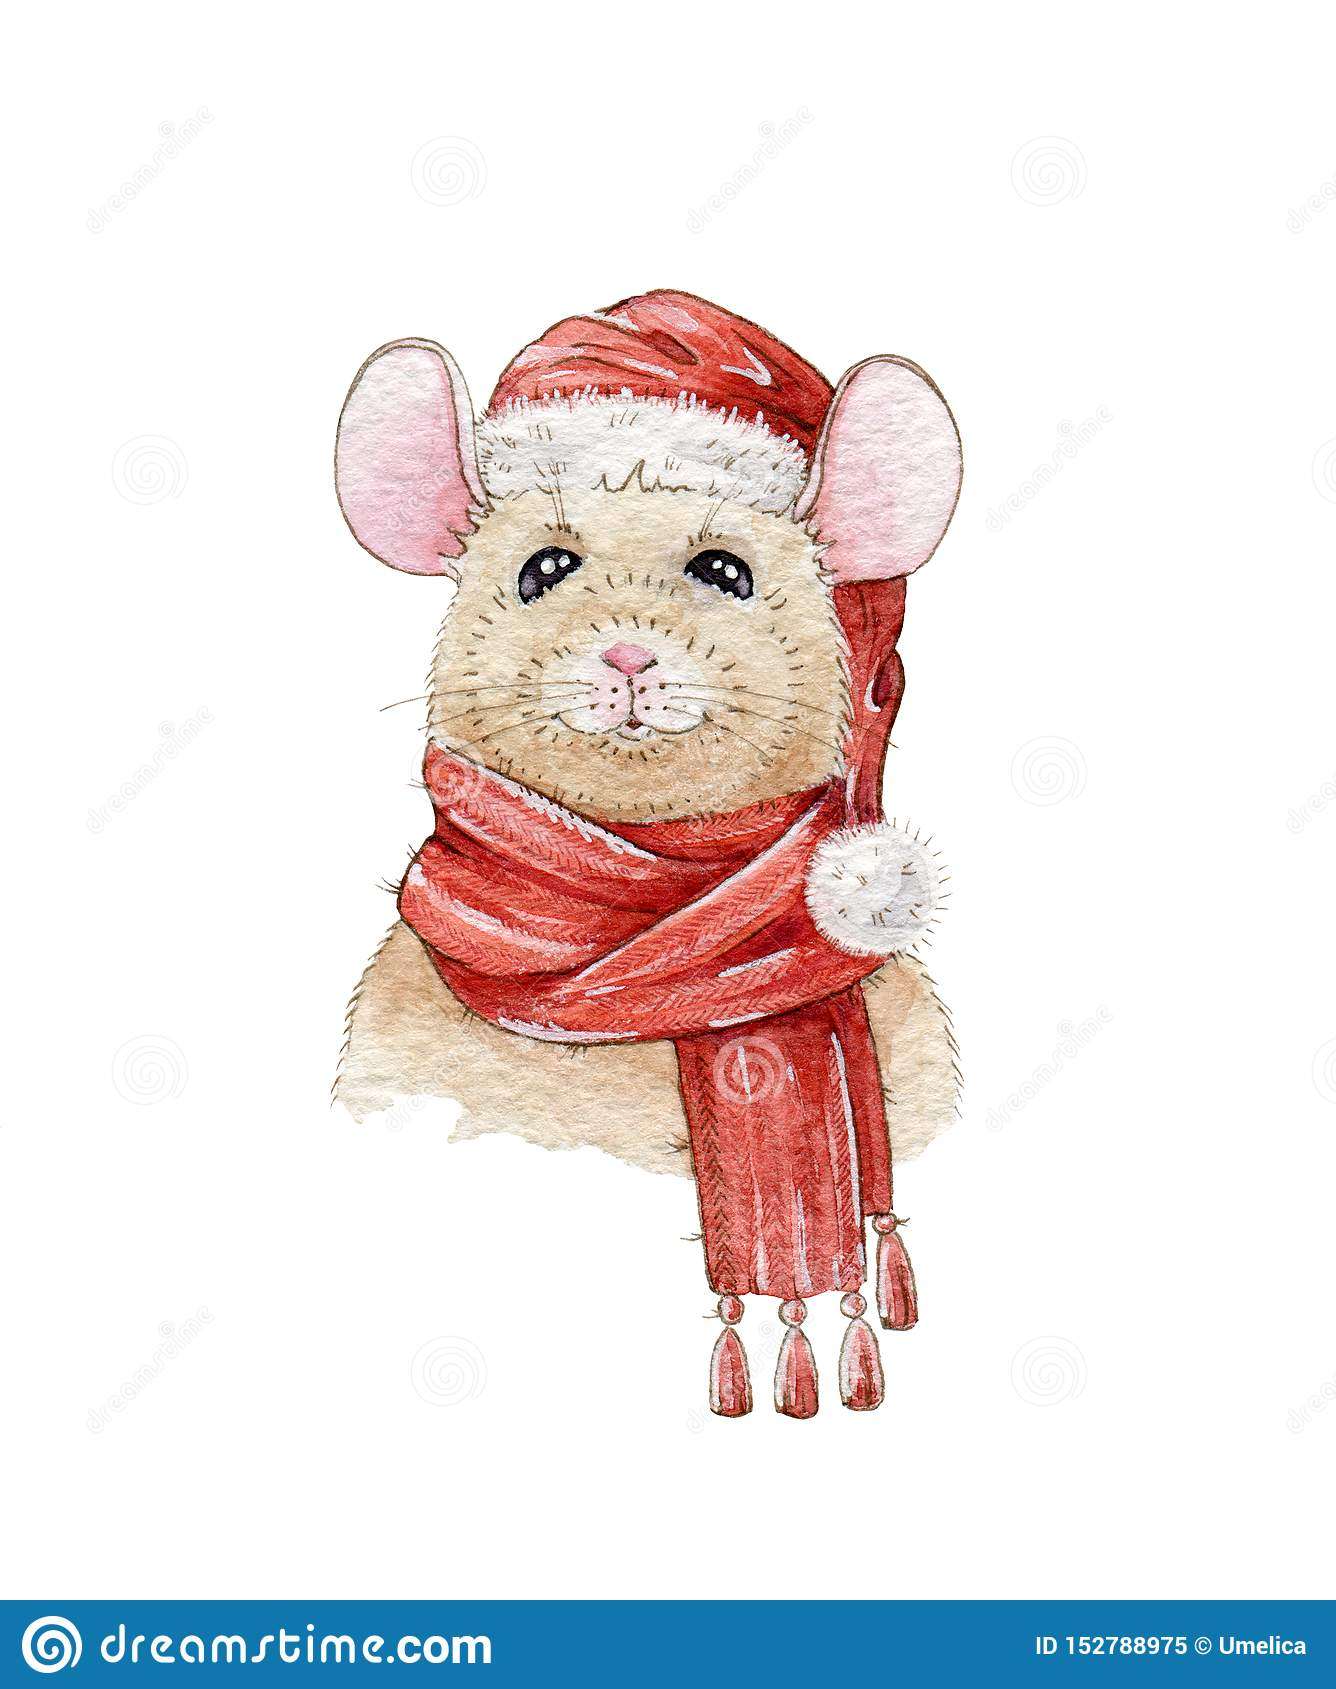 Christmas watercolor hand painted illustration of a nice mouse in a red hat and warm scarf. A chinese new year symbol of 2020.